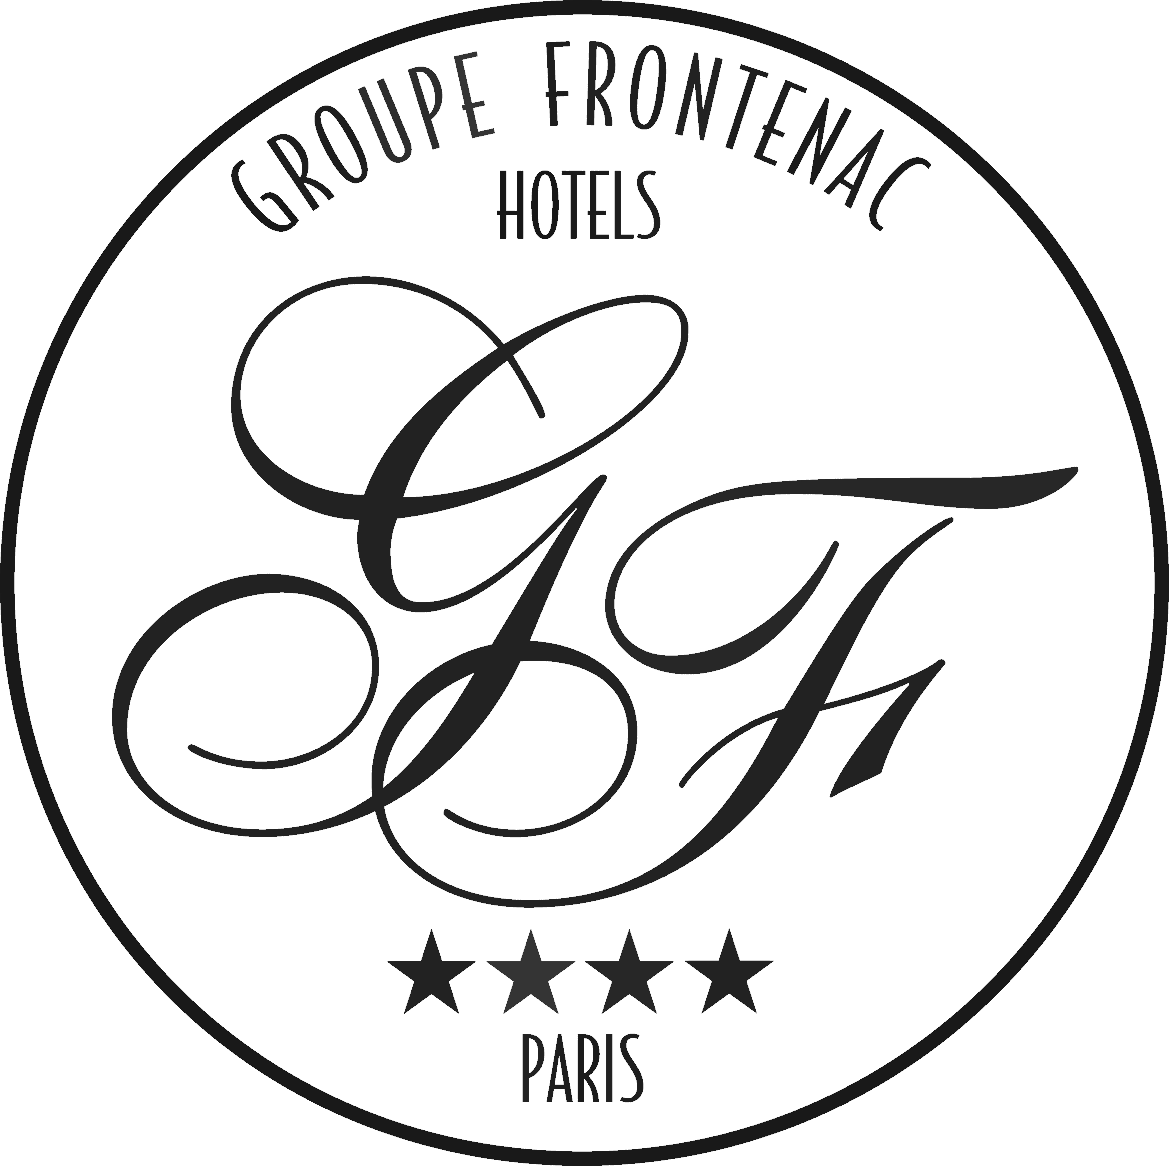 Groupe Frontenac